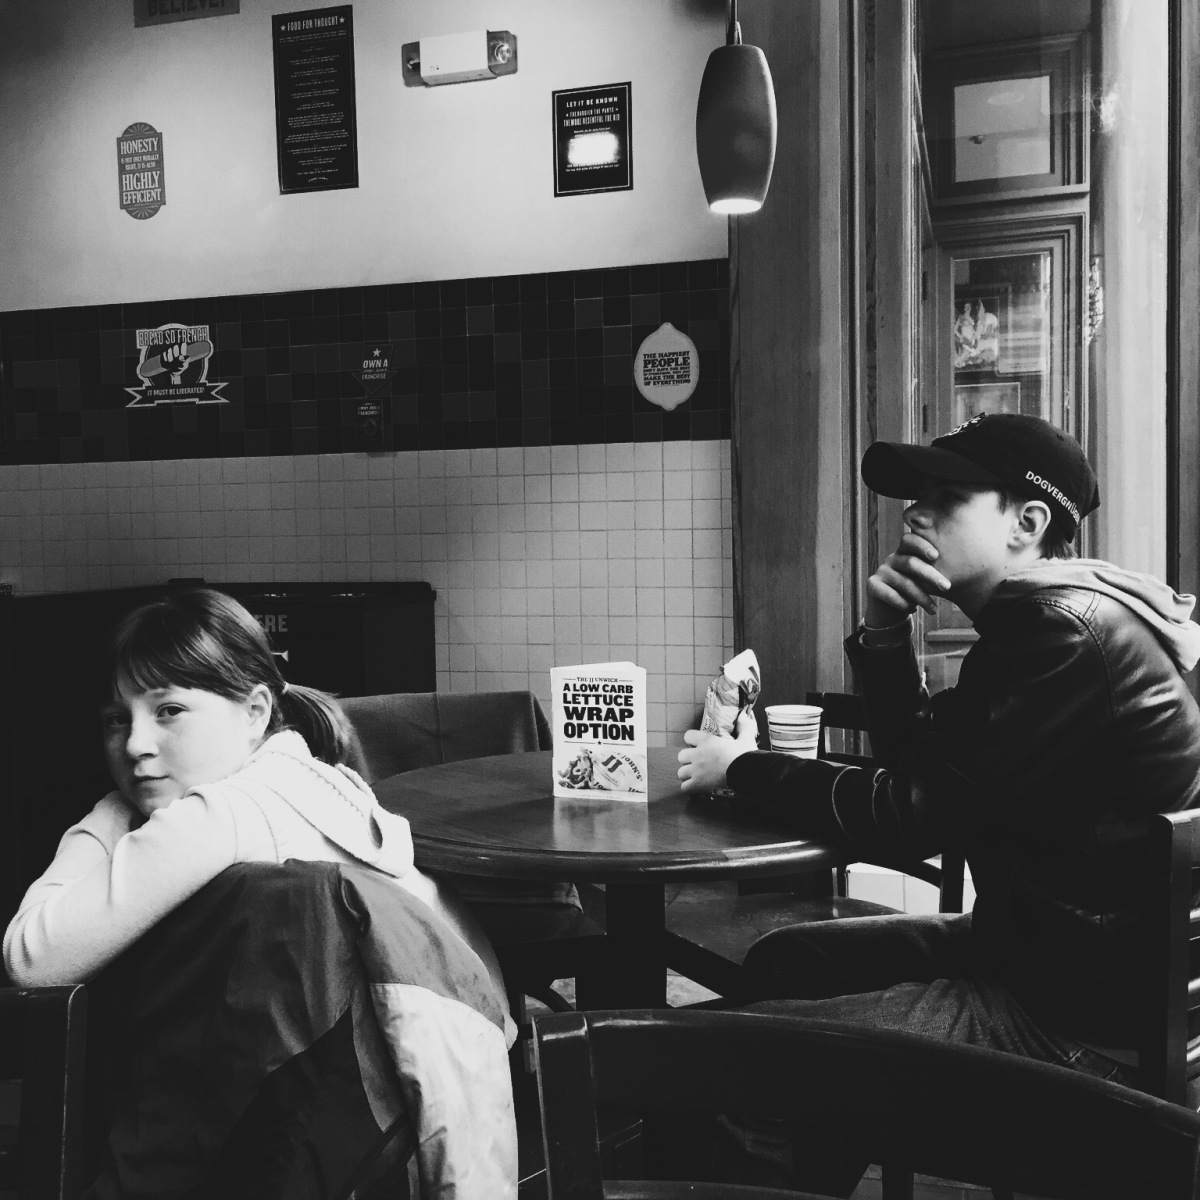 Telling Stories Through Black and White Photography:  Waiting For Food and Fun